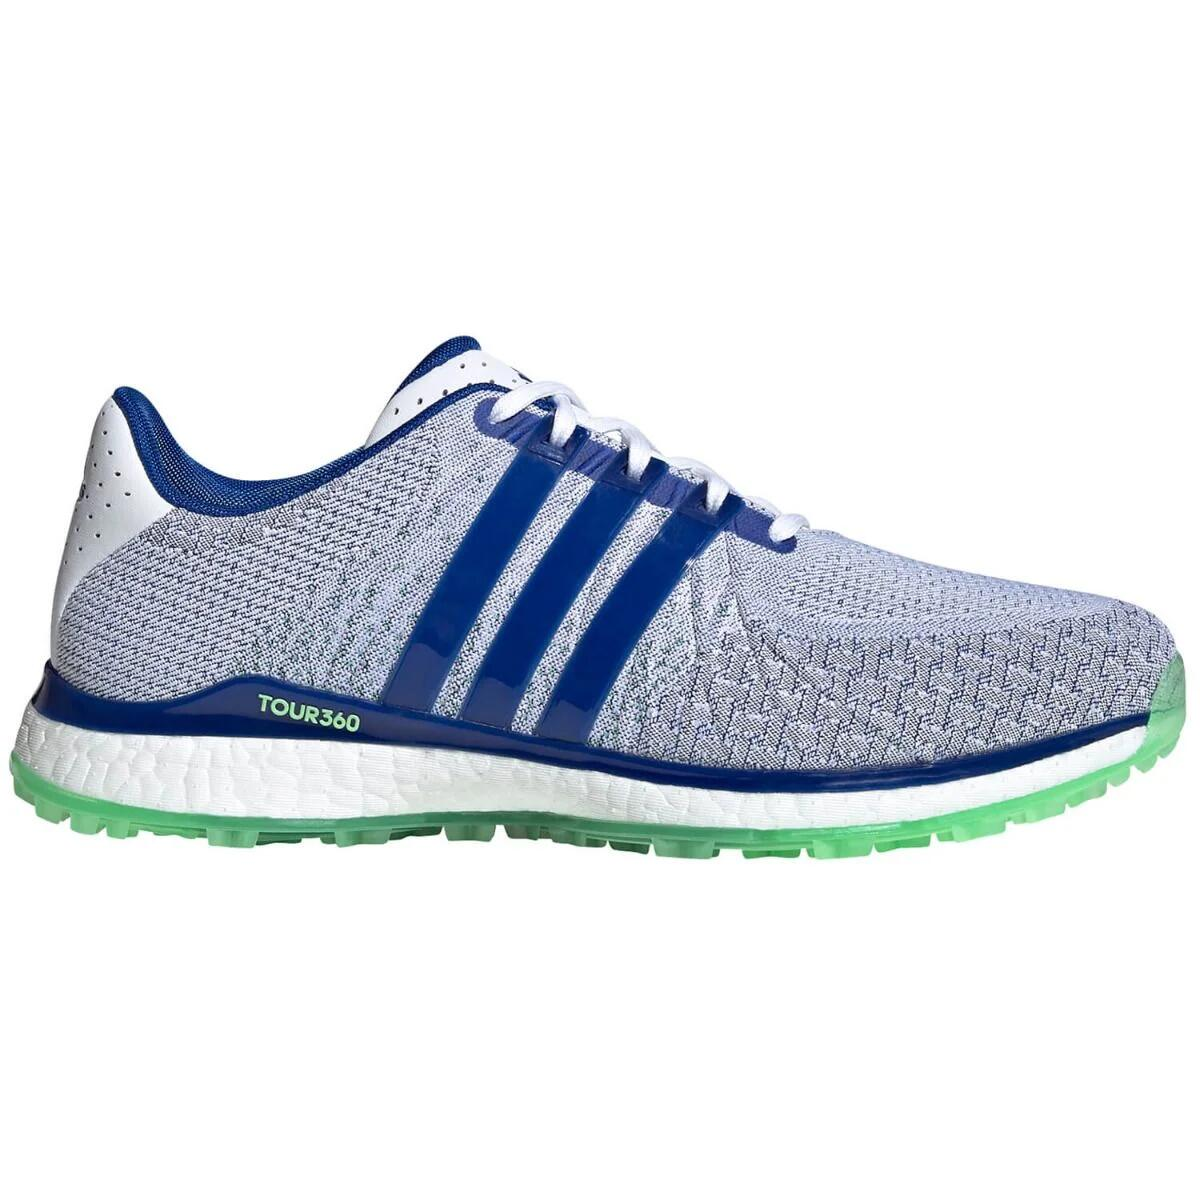 Solenoide malo invadir  adidas Tour360 XT-SL Spikeless Textile Golf Shoes White/Royal Blue/Mint -  Carl's Golfland